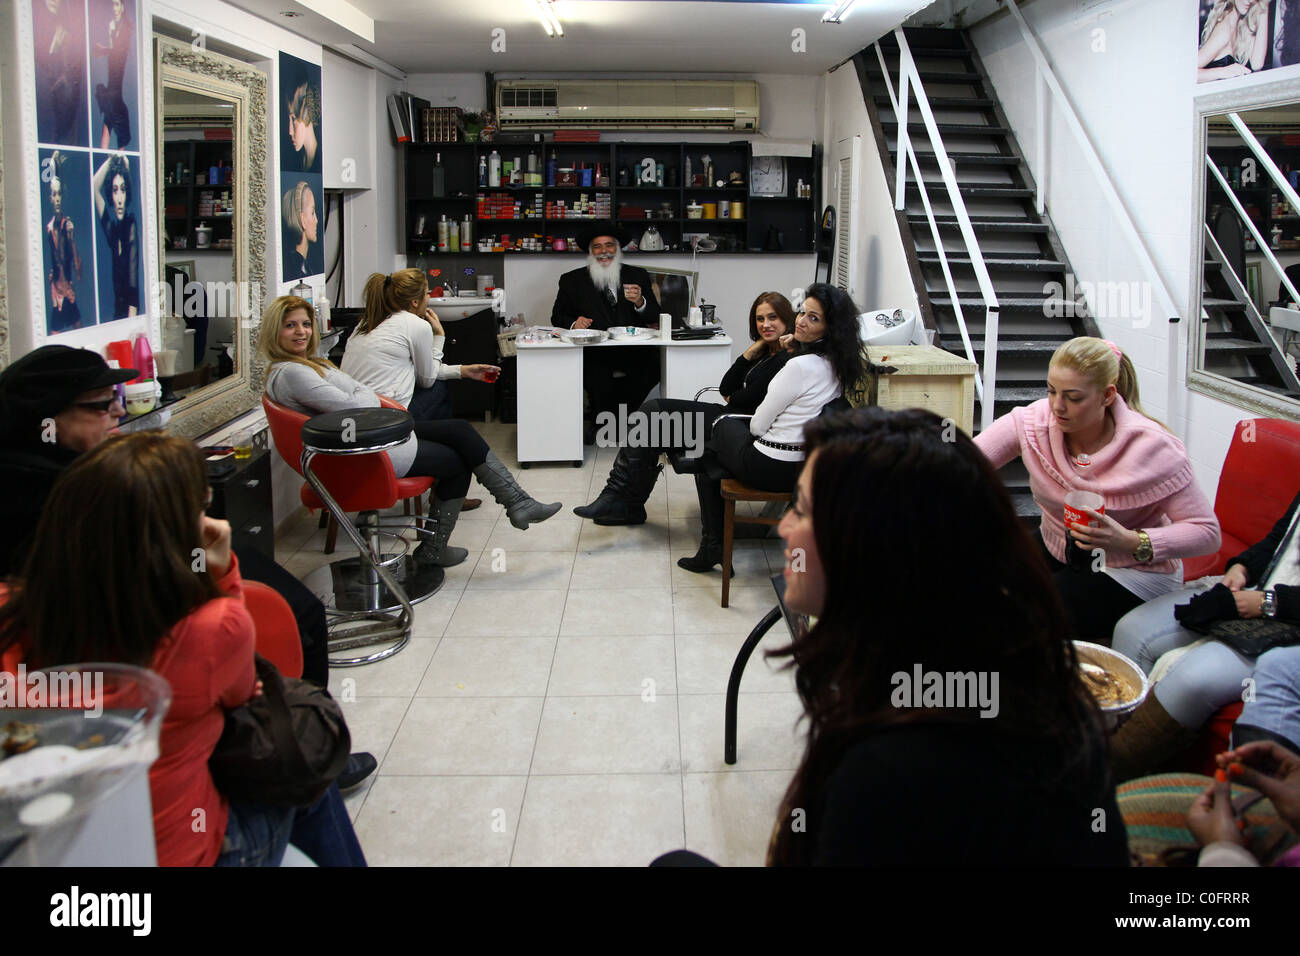 An Orthodox Jewish man giving religious lecture to young women in a beauty parlour in Tel Aviv Israel - Stock Image